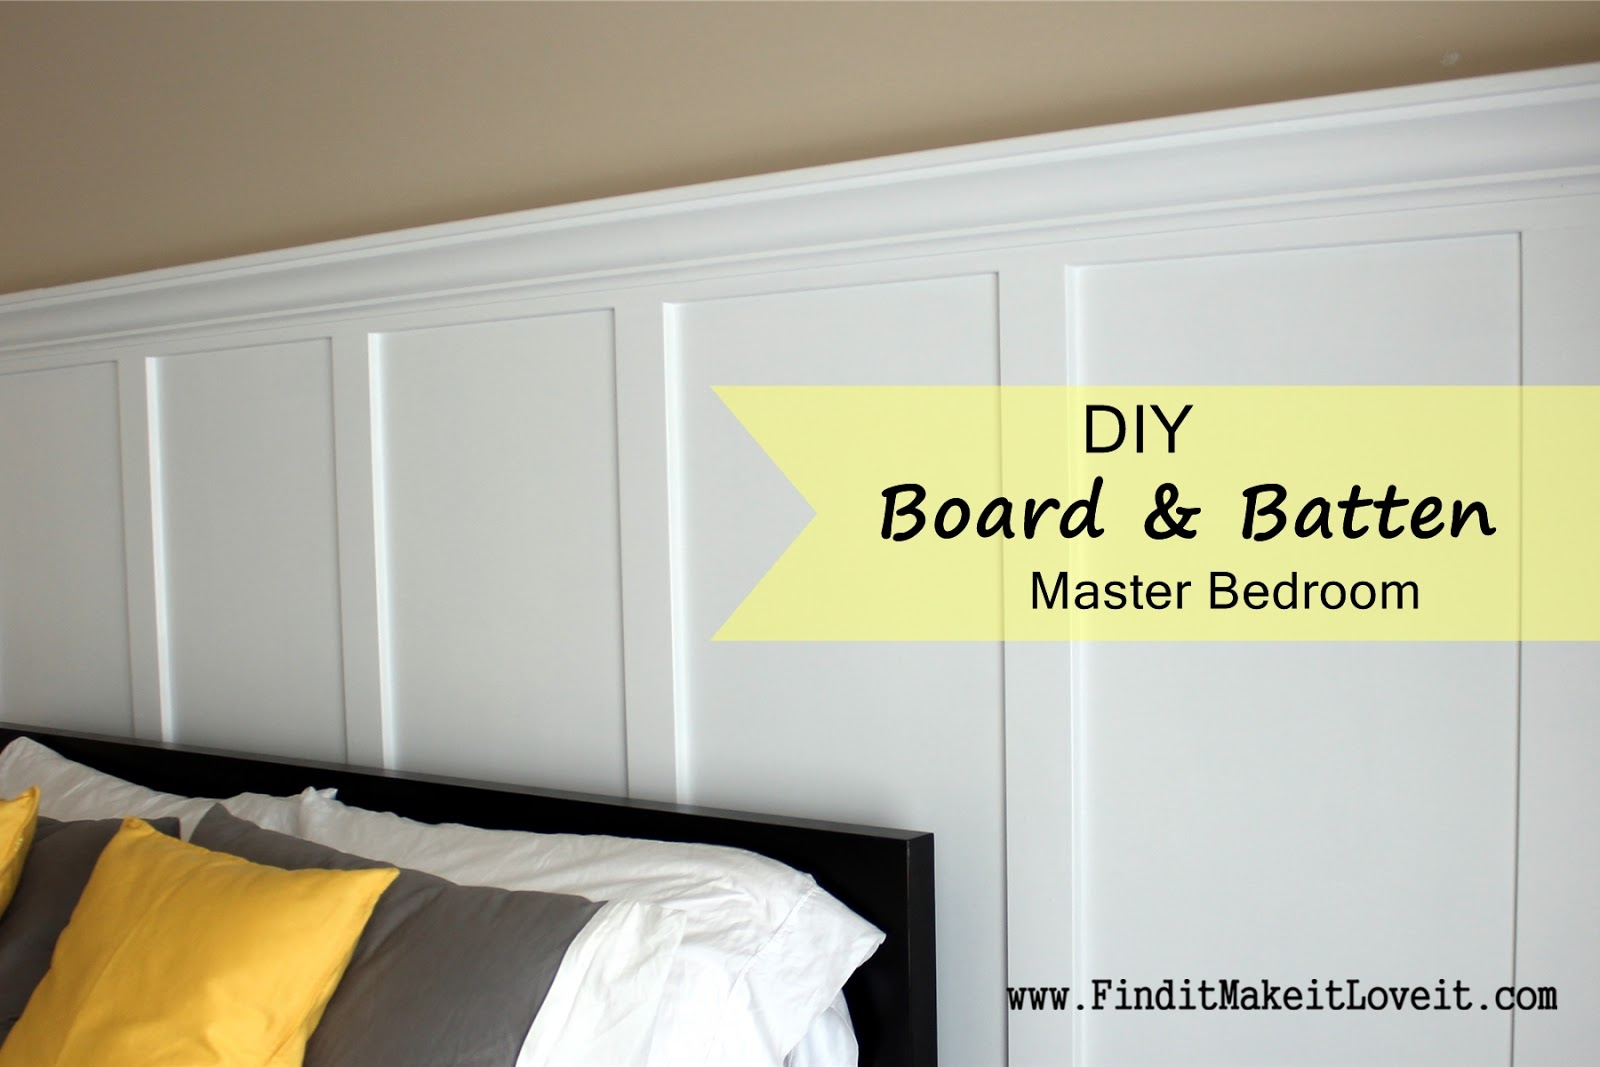 DIY Board and Batten Master Bedroom. DIY Board and Batten Master Bedroom   Find it  Make it  Love it